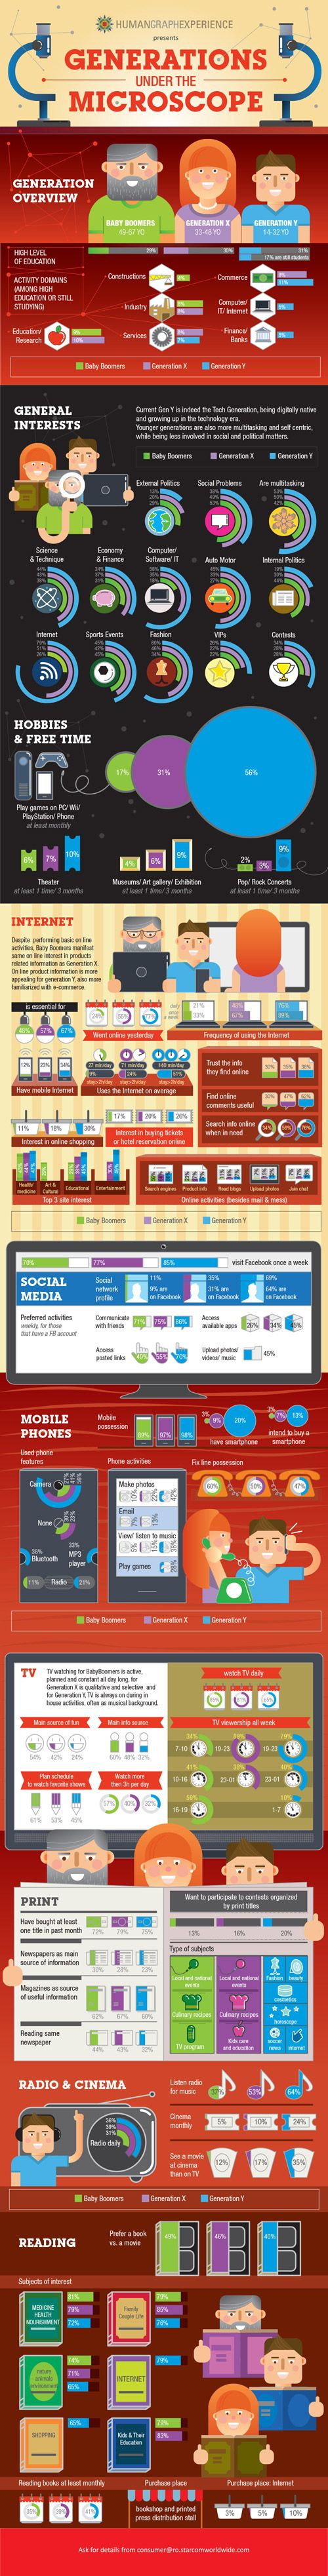 2013/Oct/10 - Generations under the Microscope - --- #socialmedia #infographic #2013